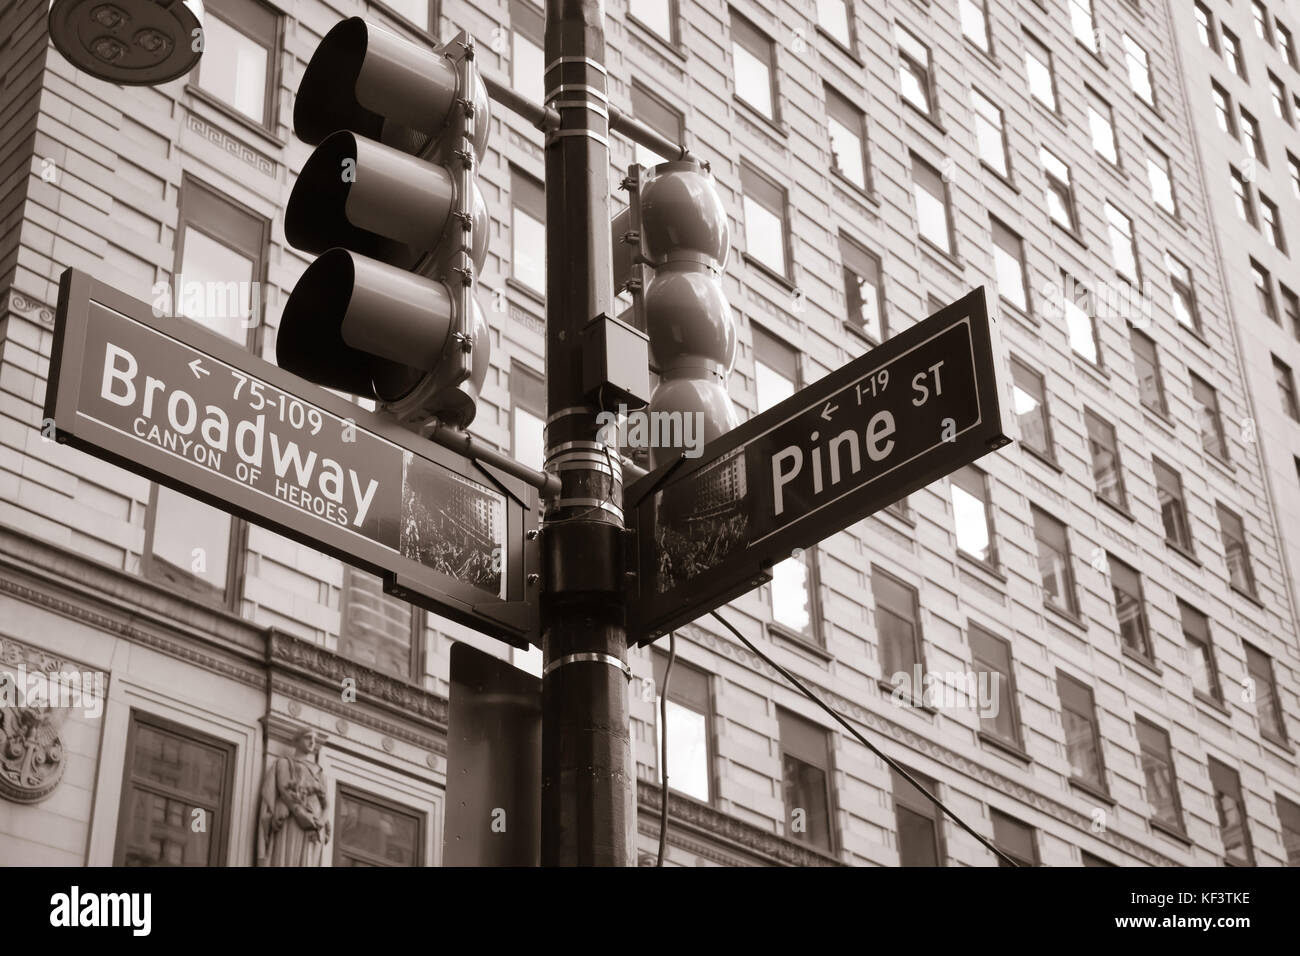 Broadway incontra pine street, new york Immagini Stock